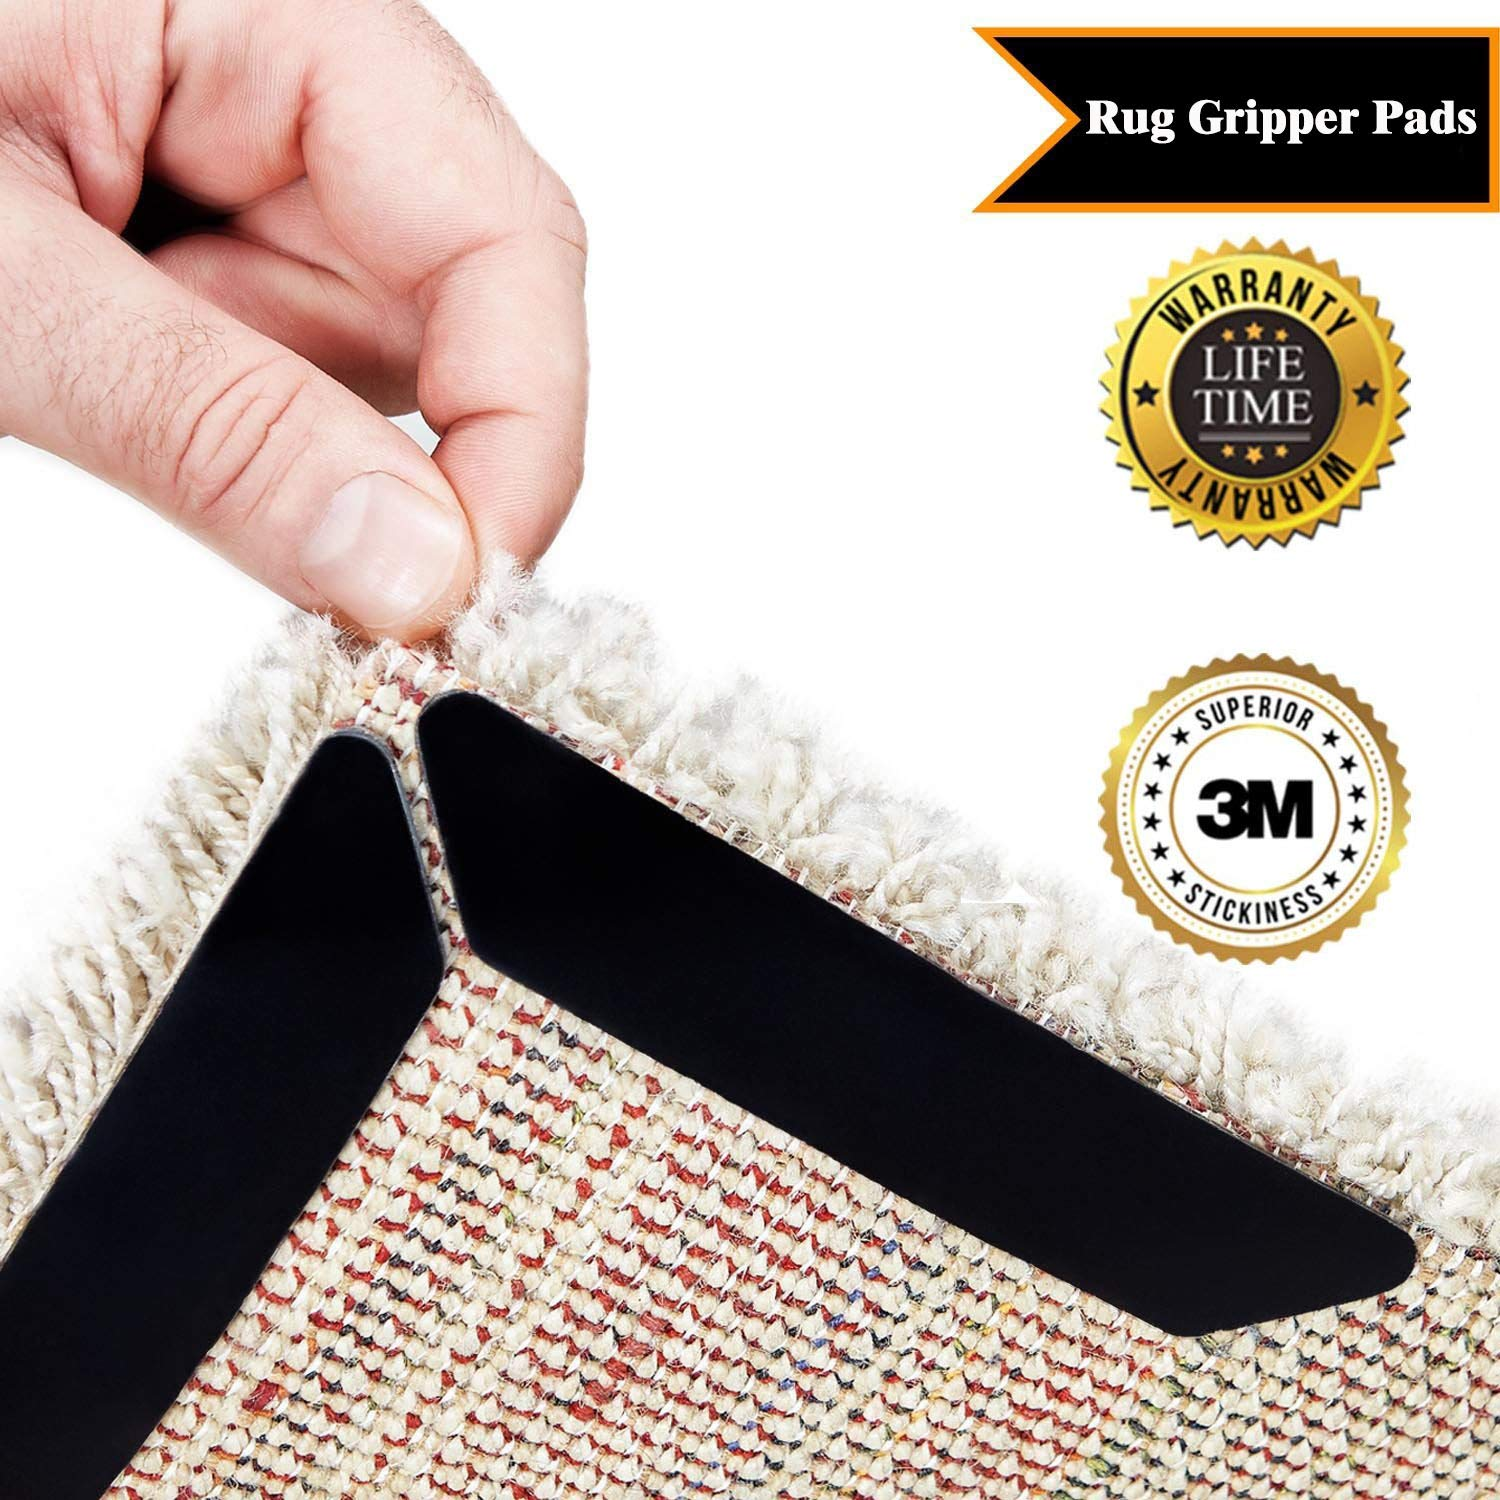 Rug Grippers, 8 pcs Black/White Anti Curling Rug Gripper, Anti Slip Straight Carpet Gripper for Corners and Edges - Anti Slip Rug Pad for Rugs - Ideal Rug Stopper For Kitchen | Bathroom (Black)